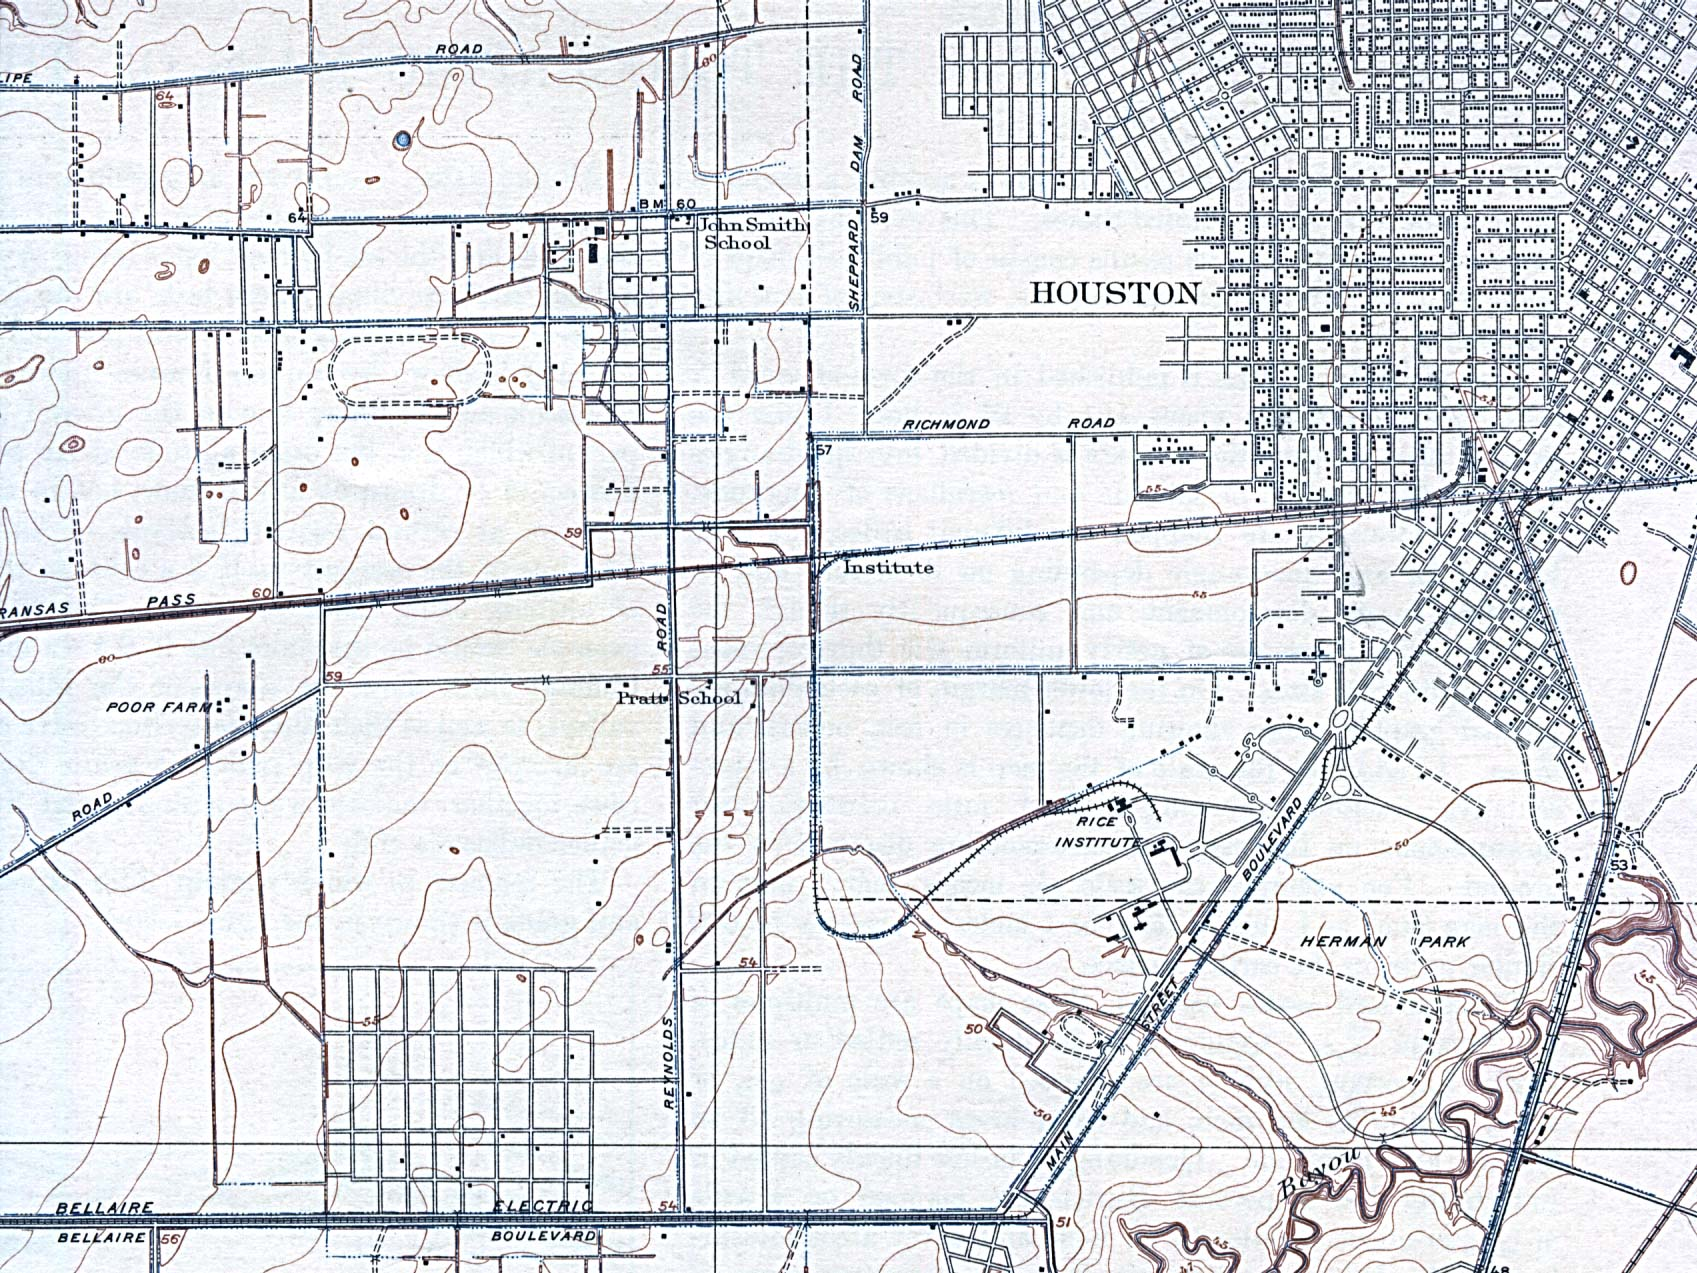 Historical Maps of U.S Cities. Houston, Texas (South West) 1921 Original Scale 1:31,680. U.S. Geological Survey (566K)